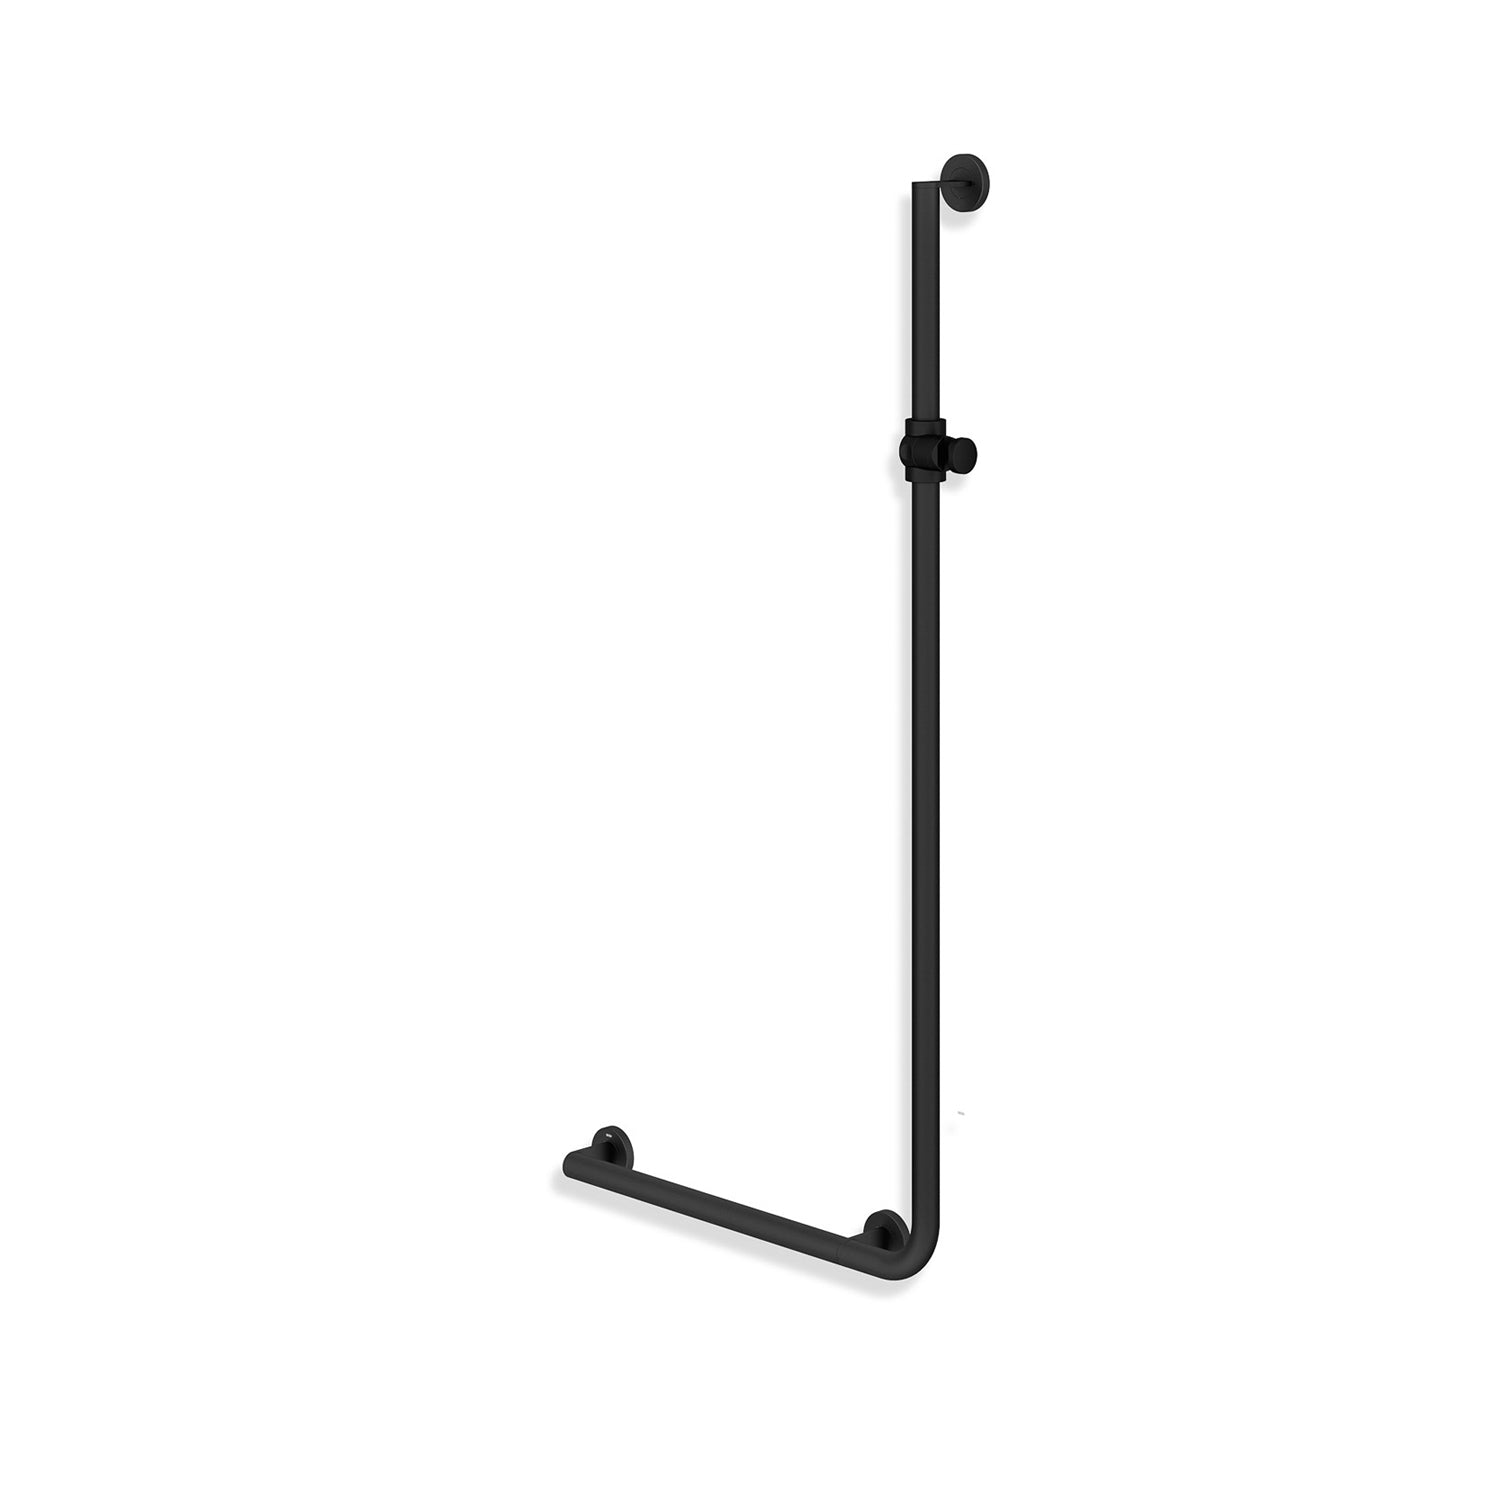 1250x600mm Left Handed Freestyle Supportive L Shaped Shower Rail with a matt black finish on a white background